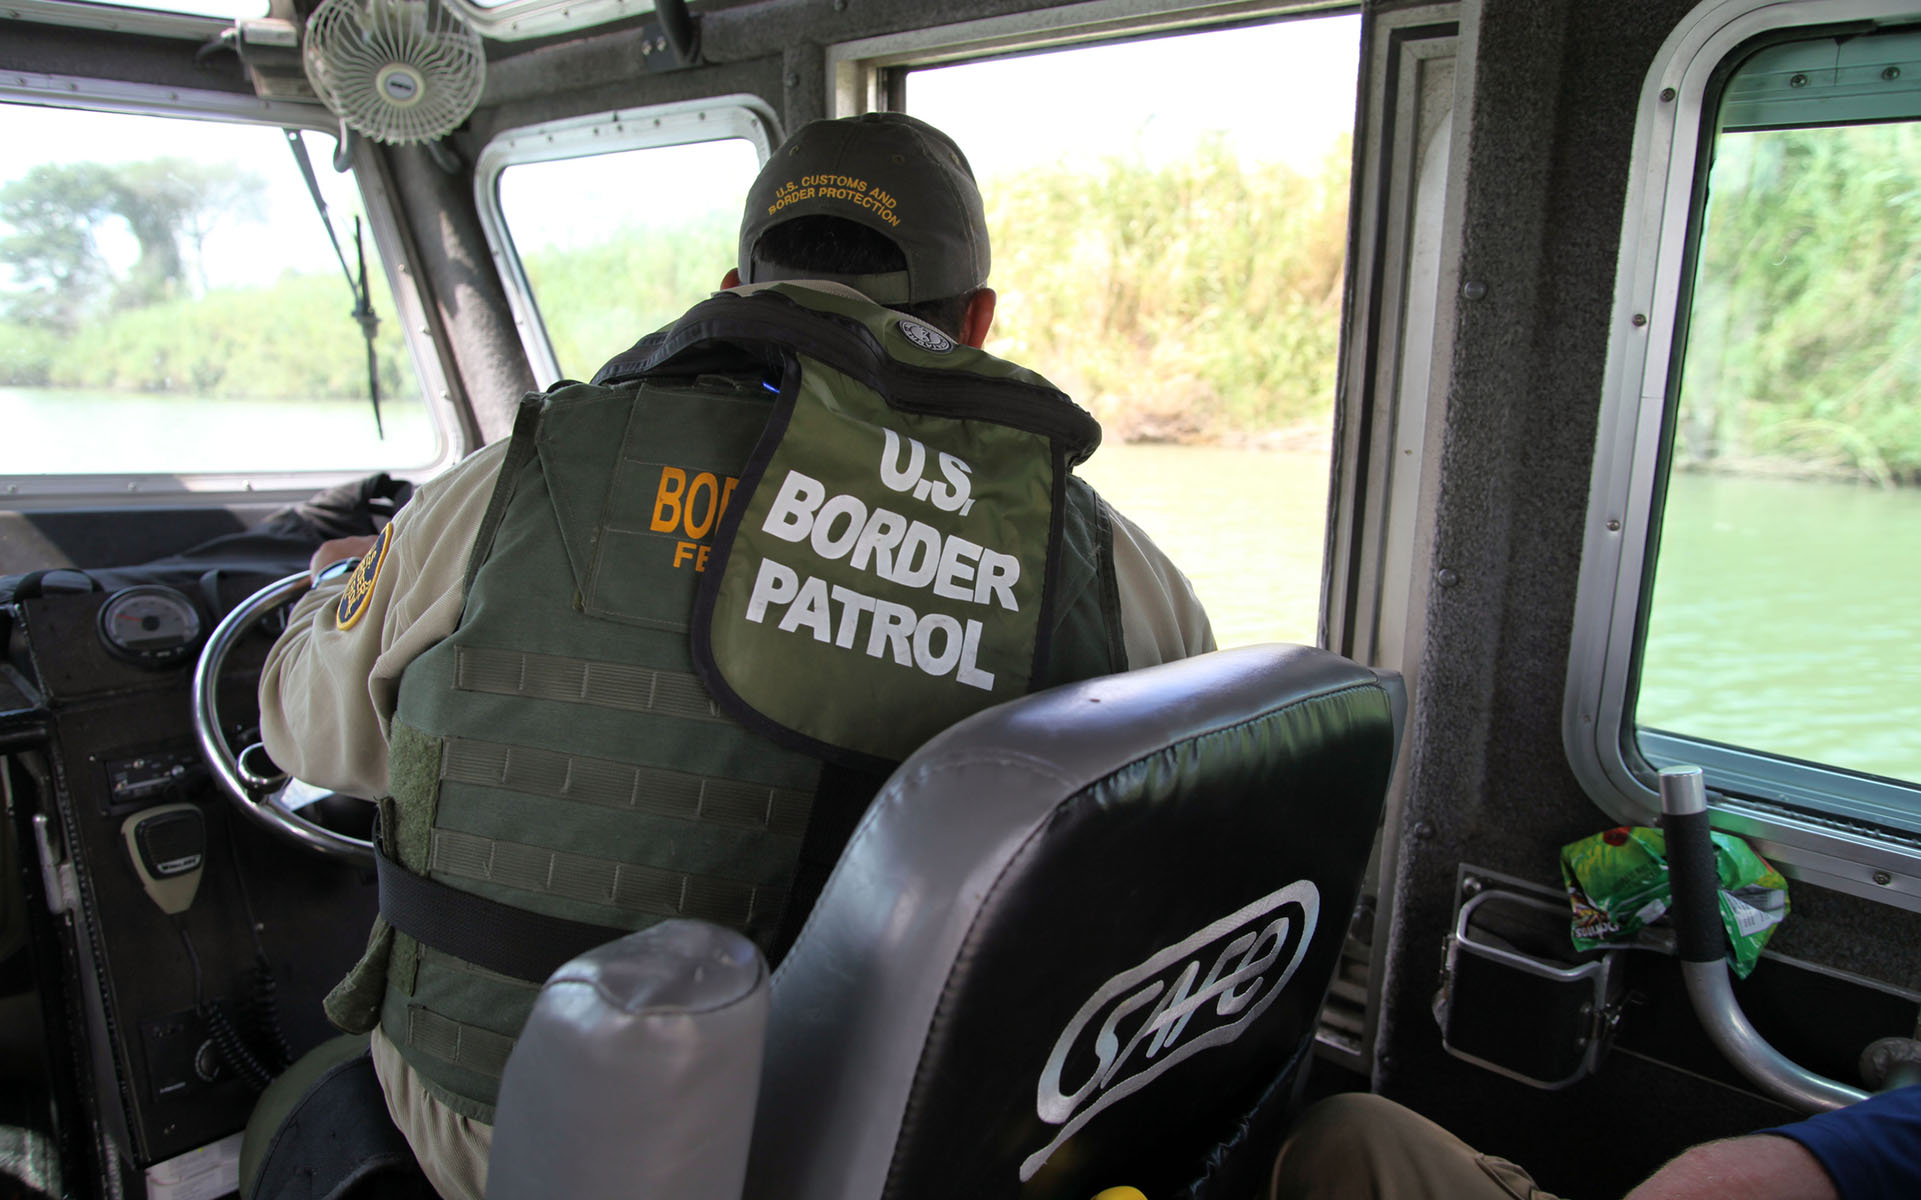 Border Patrol keeps seizing legal cannabis far from border in California